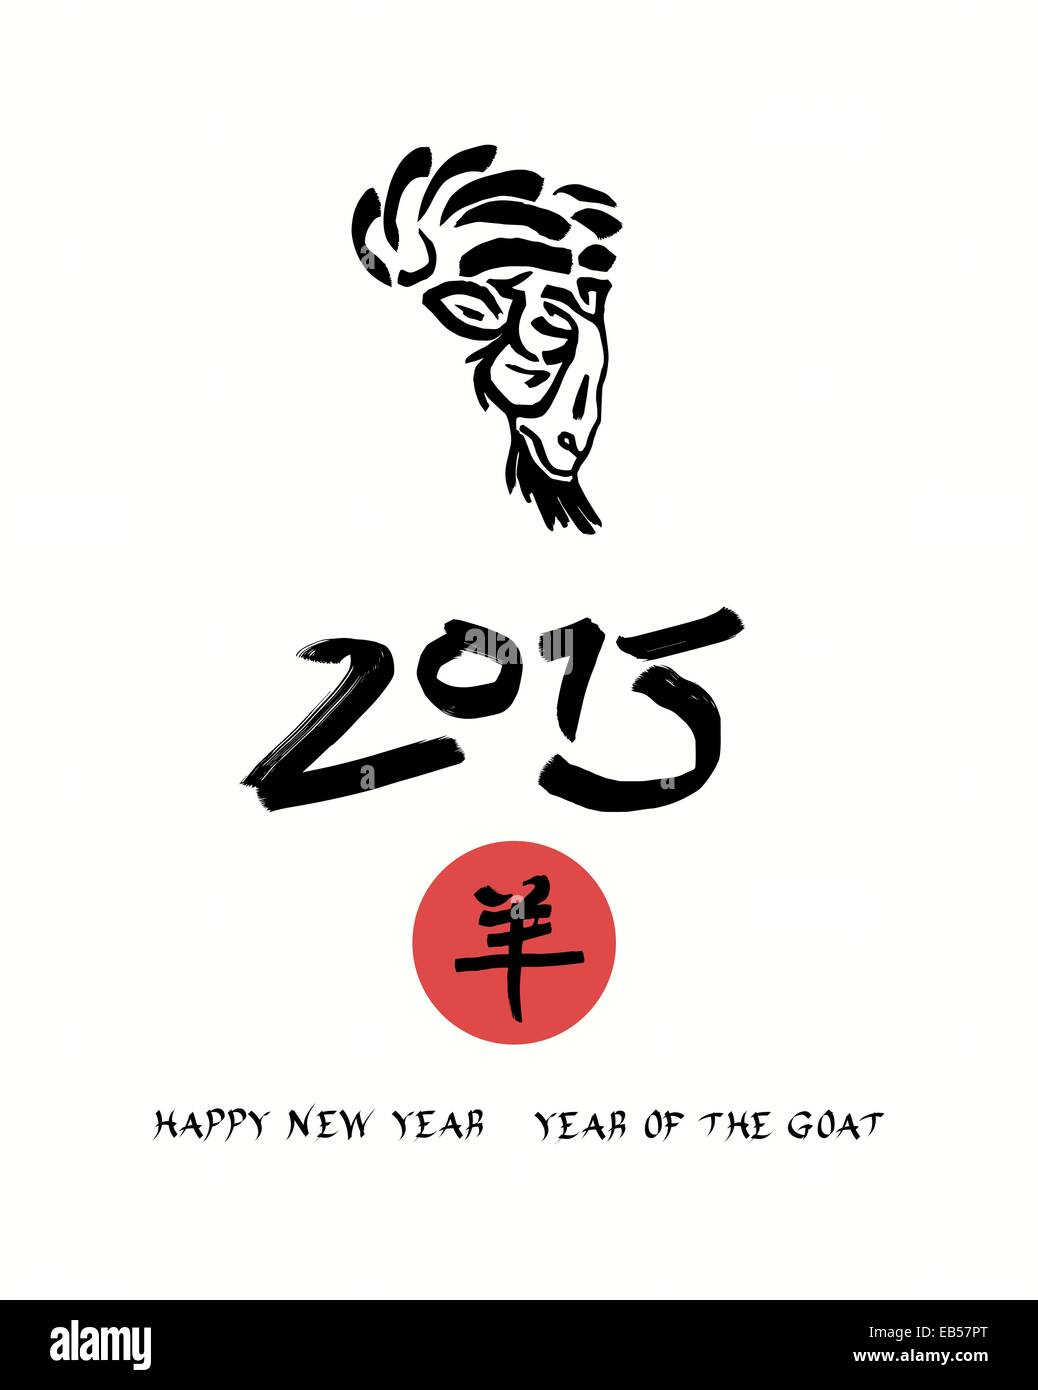 2015 year of the goat vector - Stock Image